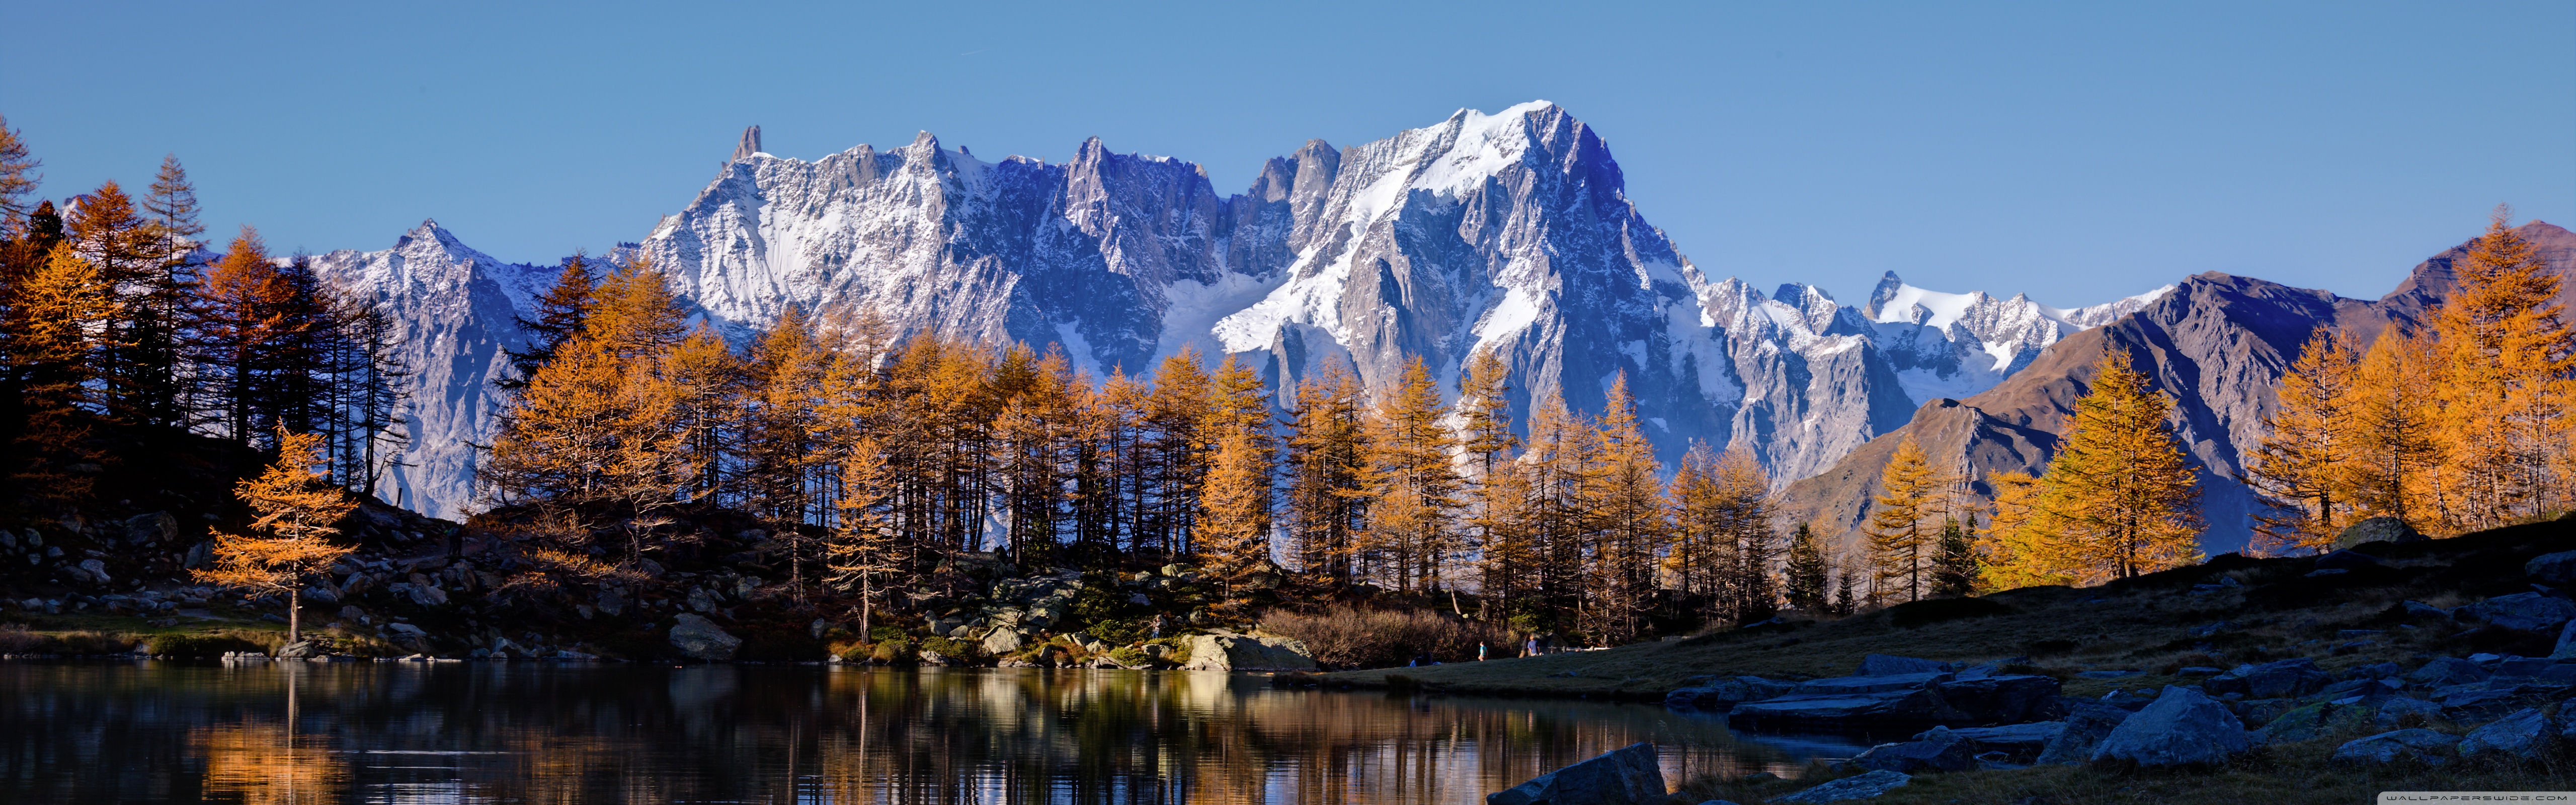 Mont Blanc Autumn 4K HD Desktop Wallpaper for Dual Monitor 5120x1600